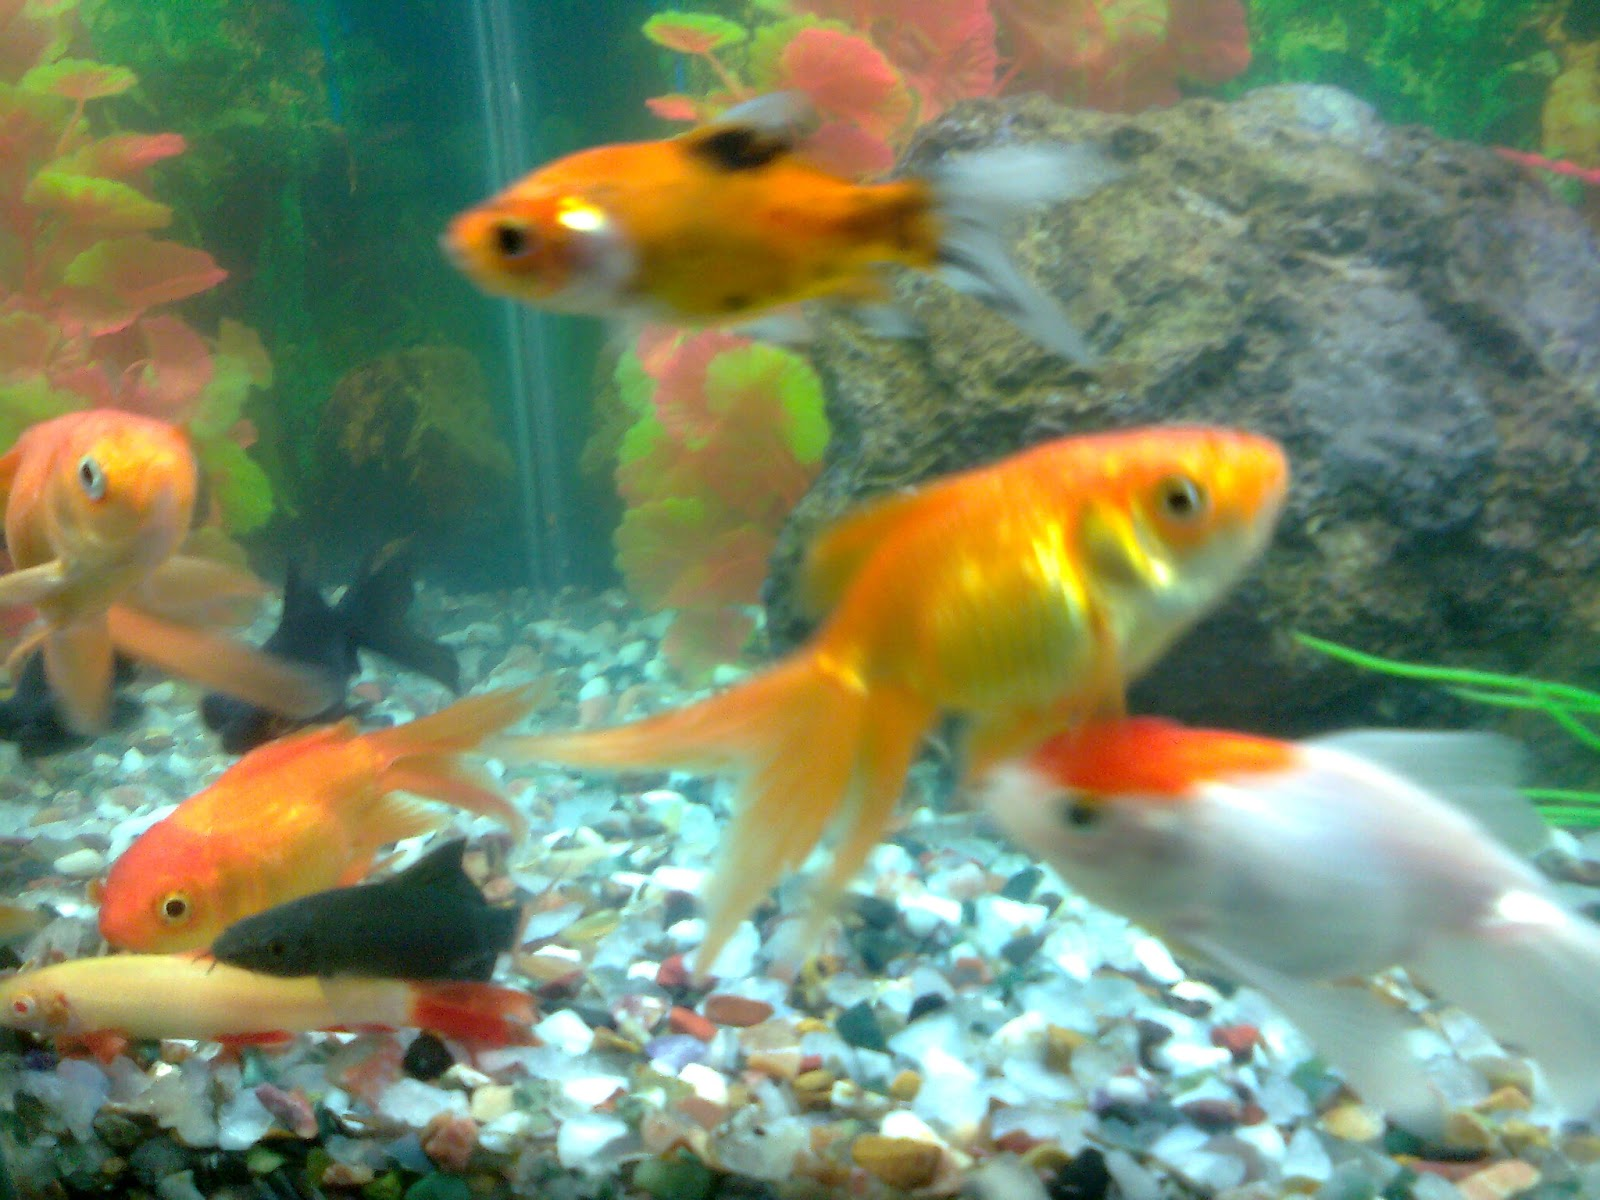 Pet shop ahmedabad gold fish aquarium for Fish tank for goldfish